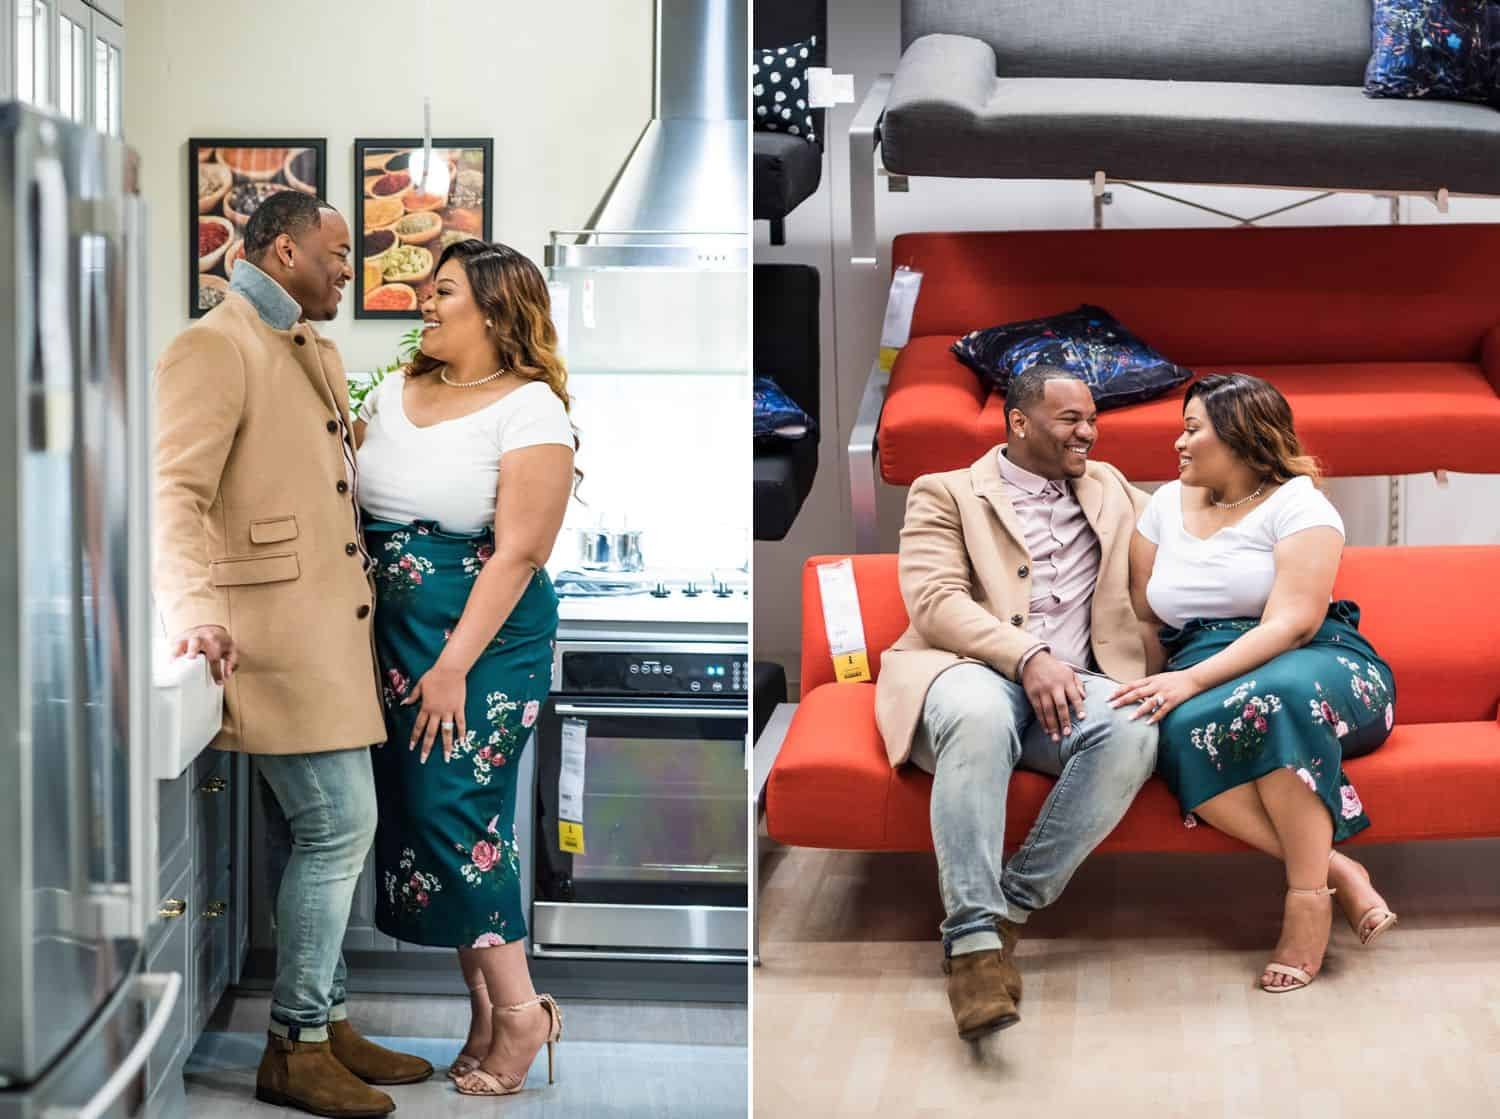 Great Engagement Sessions: Diptych of couple standing in an IKEA kitchen and snuggling on an IKEA sofa.